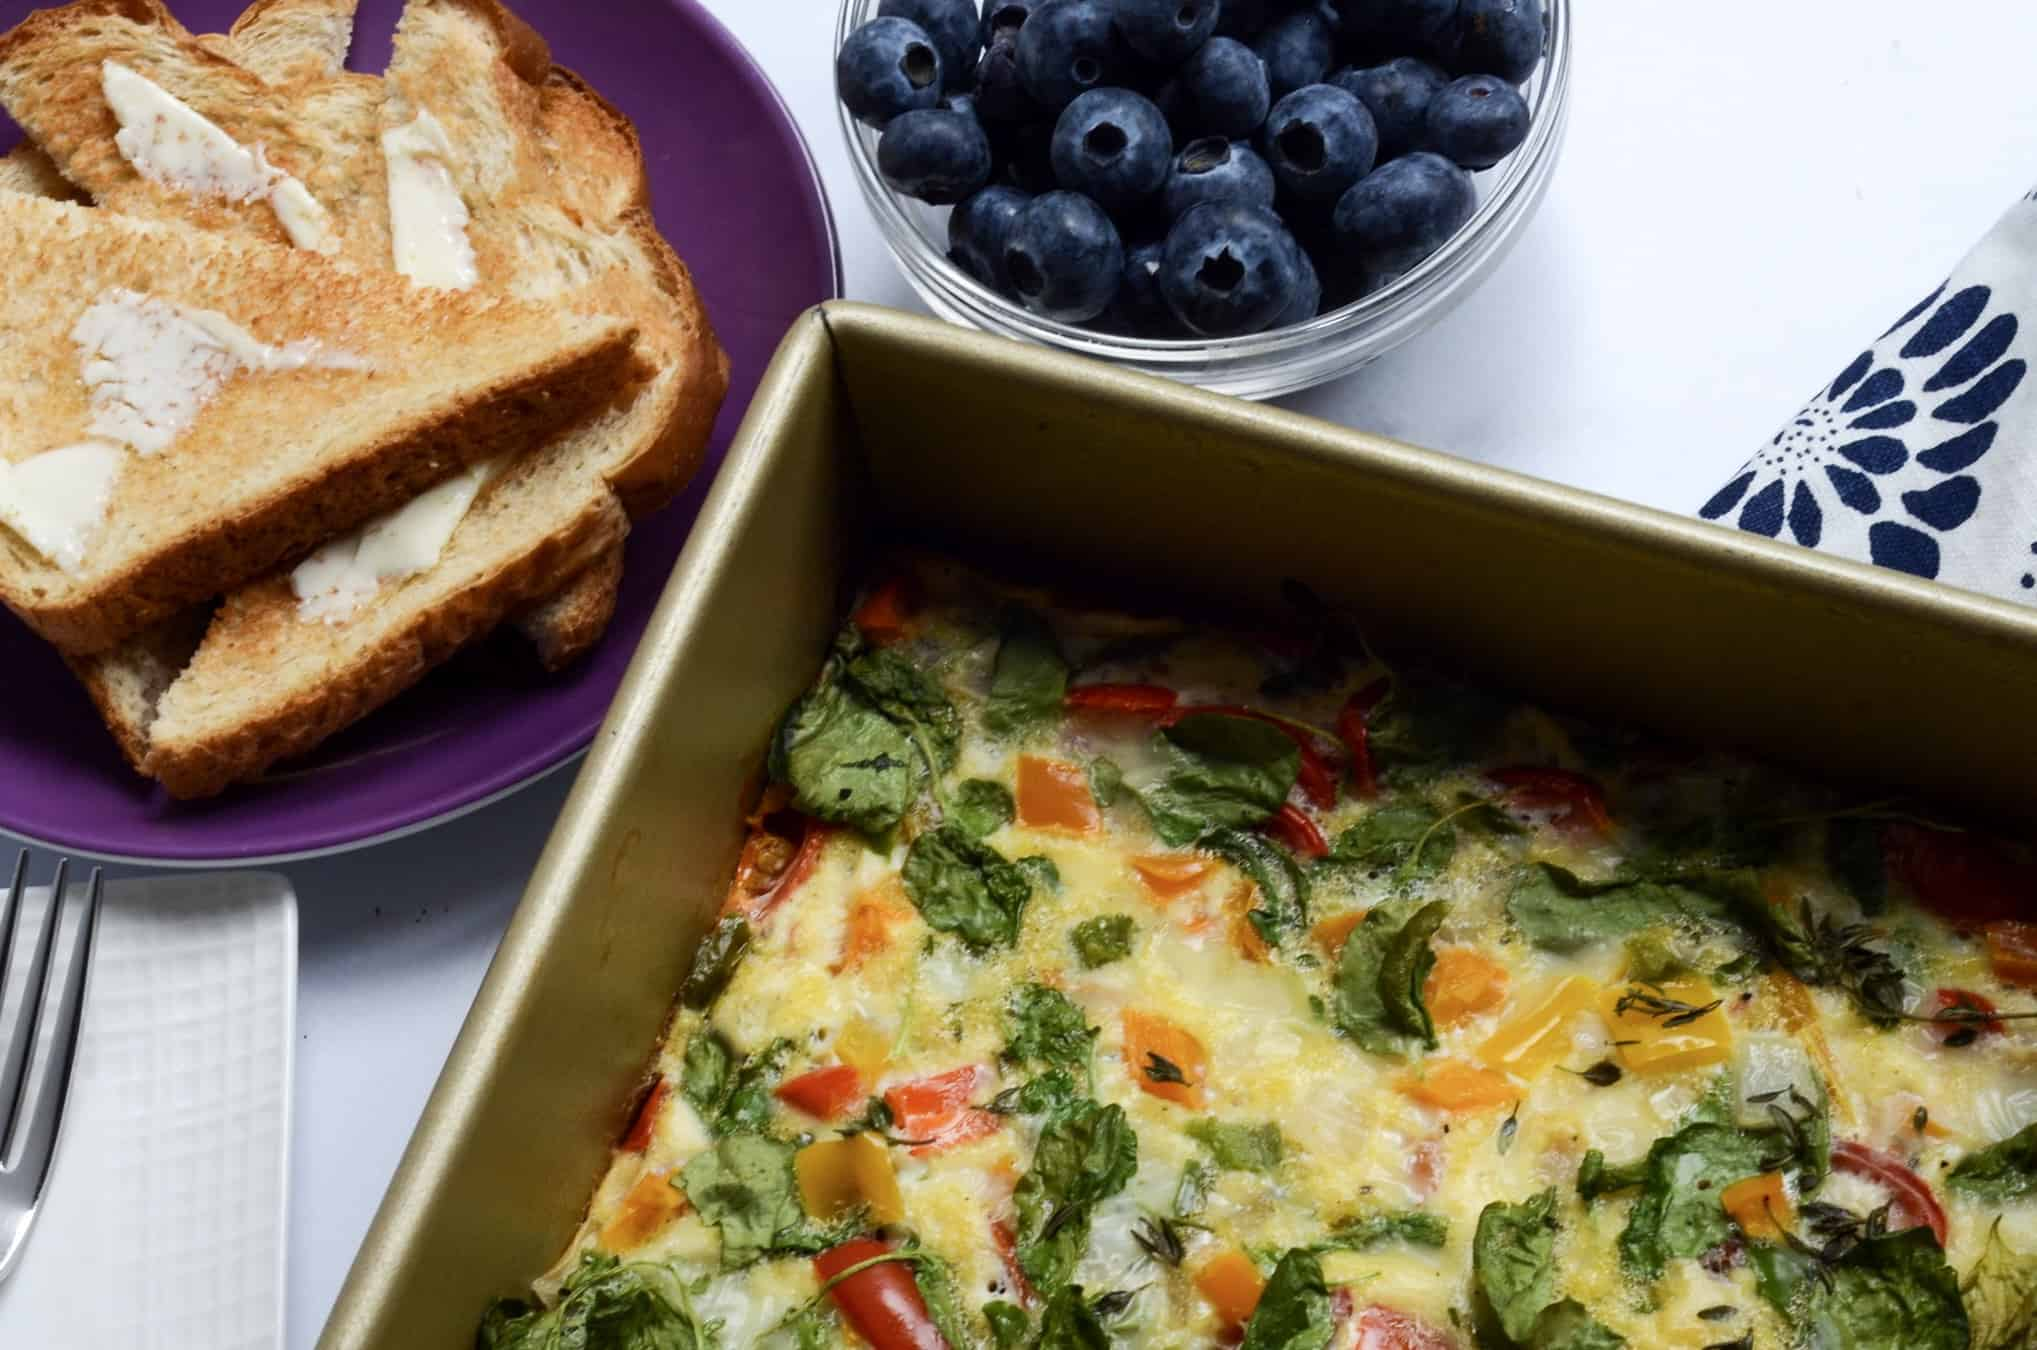 egg and vegetable breakfast bake with toast and blueberries